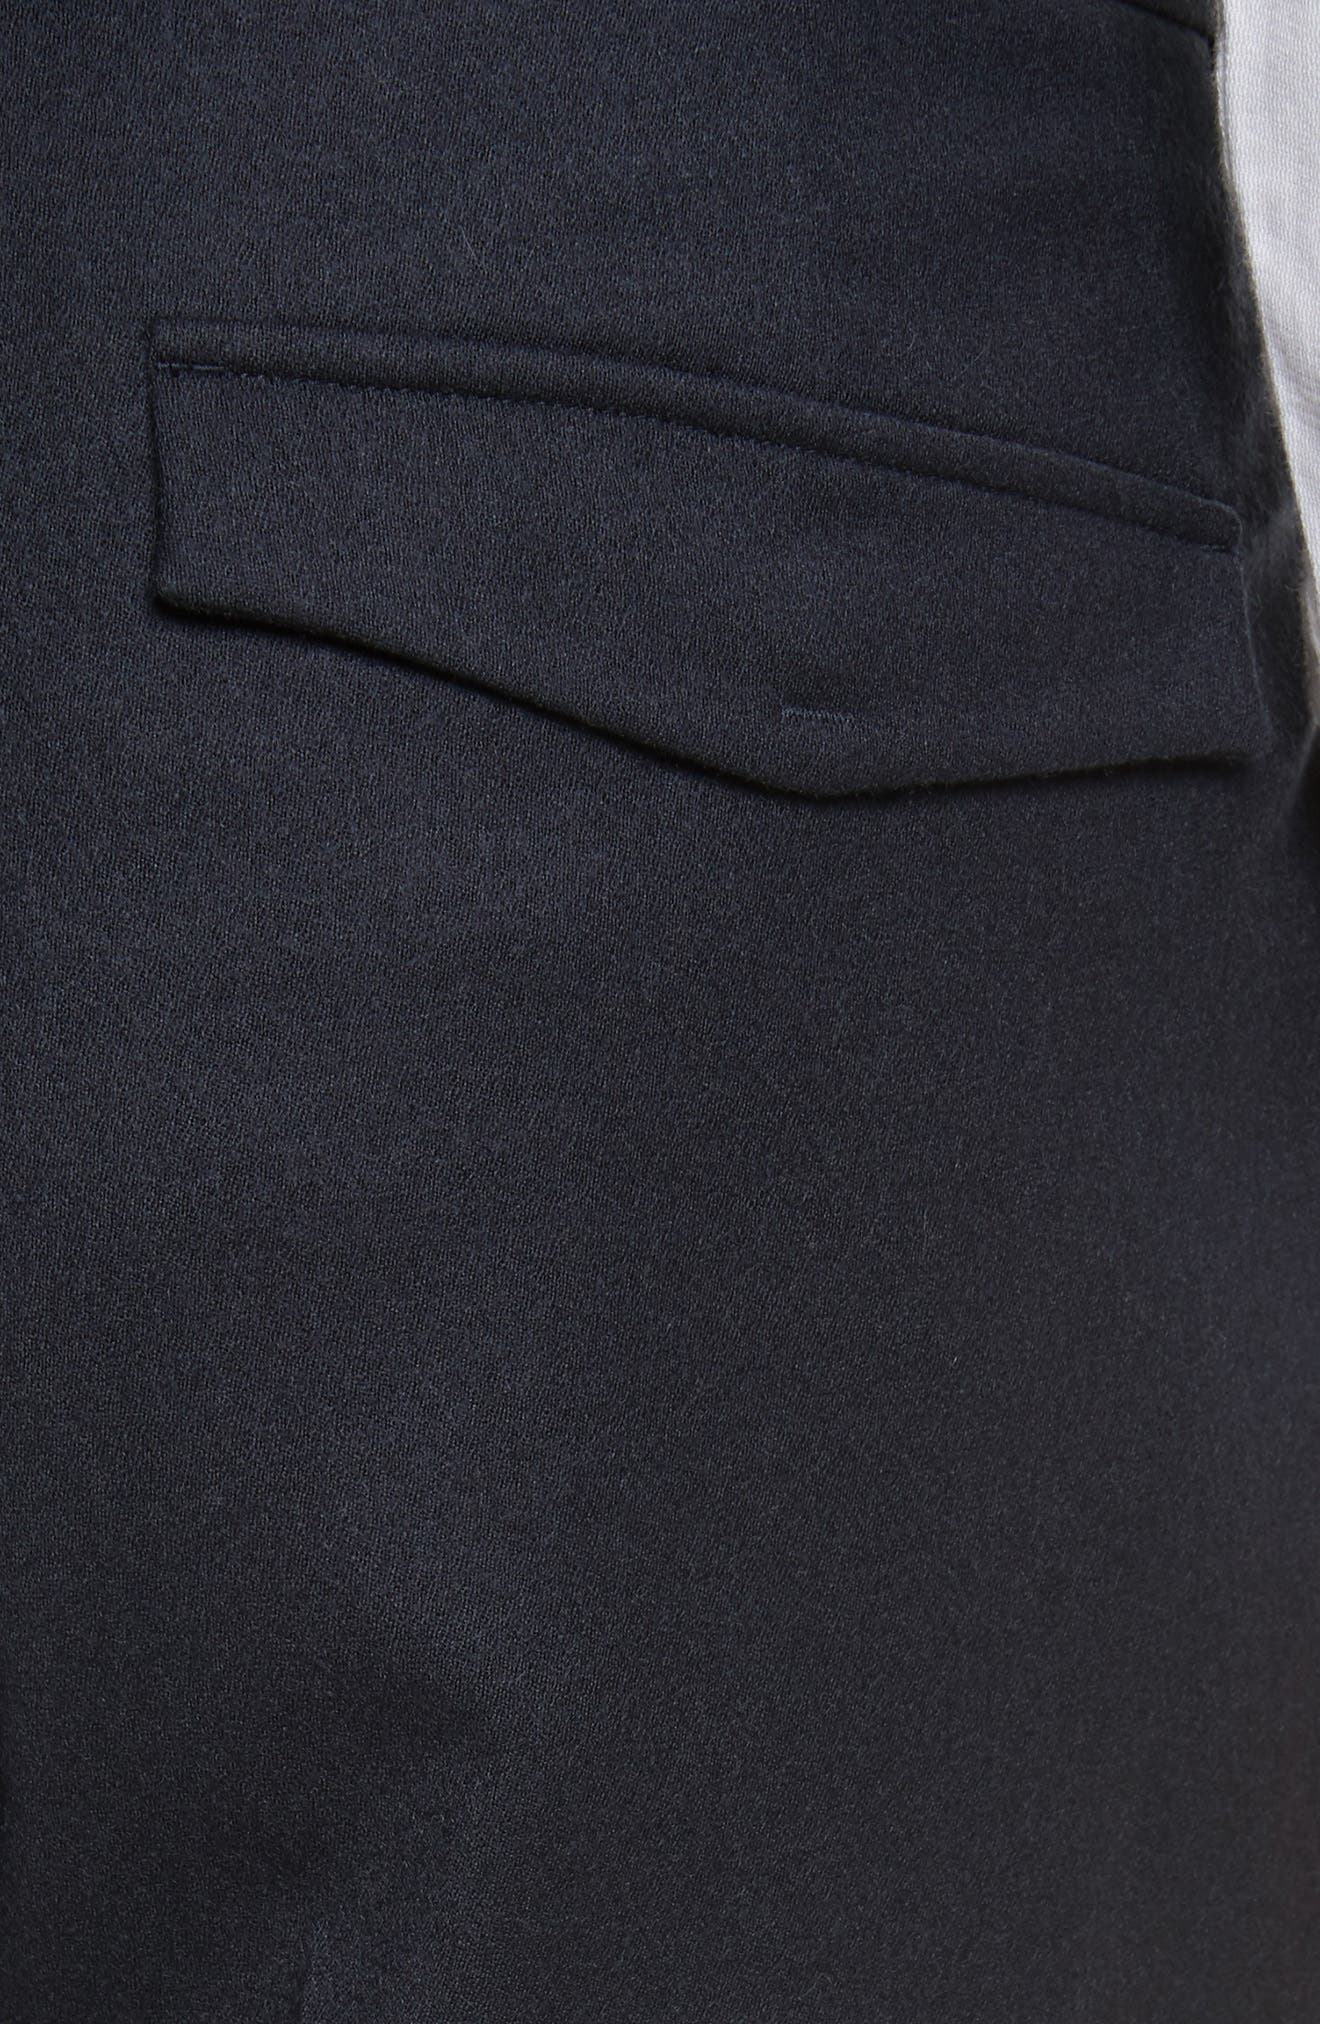 Regular Fit Wool Cargo Trousers,                             Alternate thumbnail 5, color,                             Navy Solid